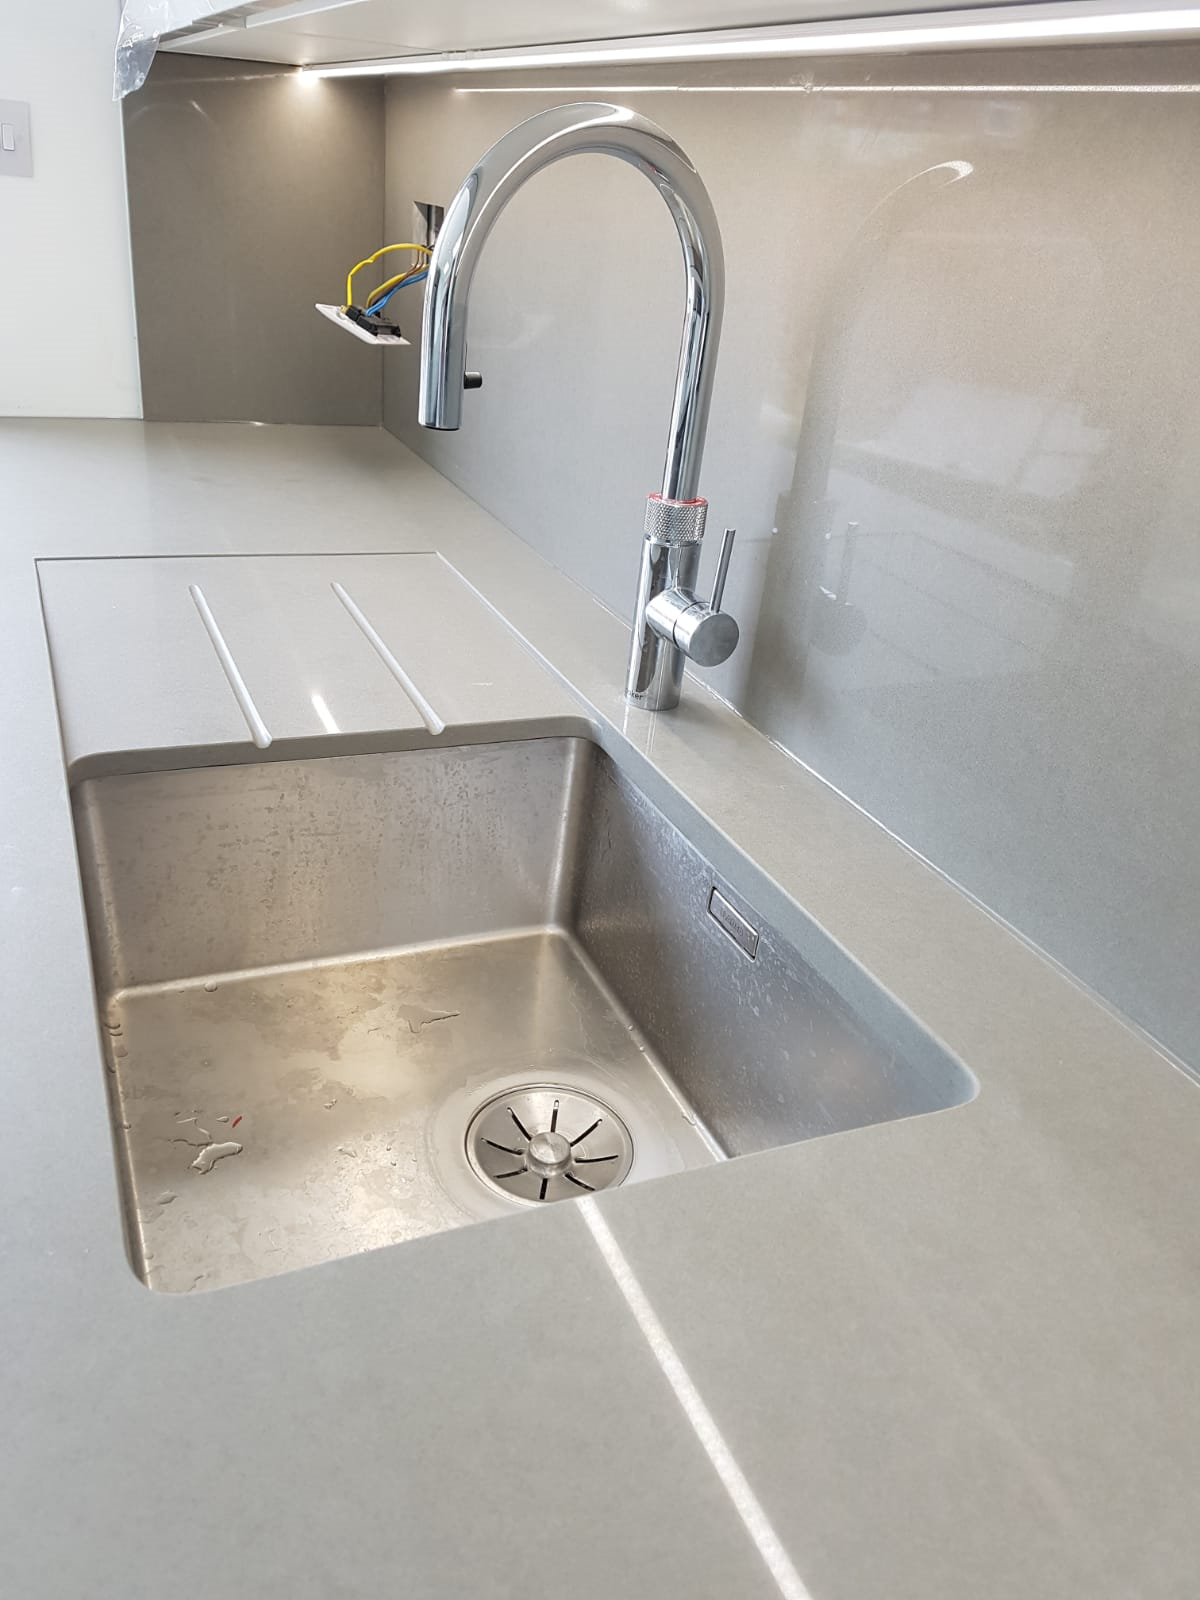 Quartz Worktop With A Slope Down Sink Includes 2 Drainer Grooves